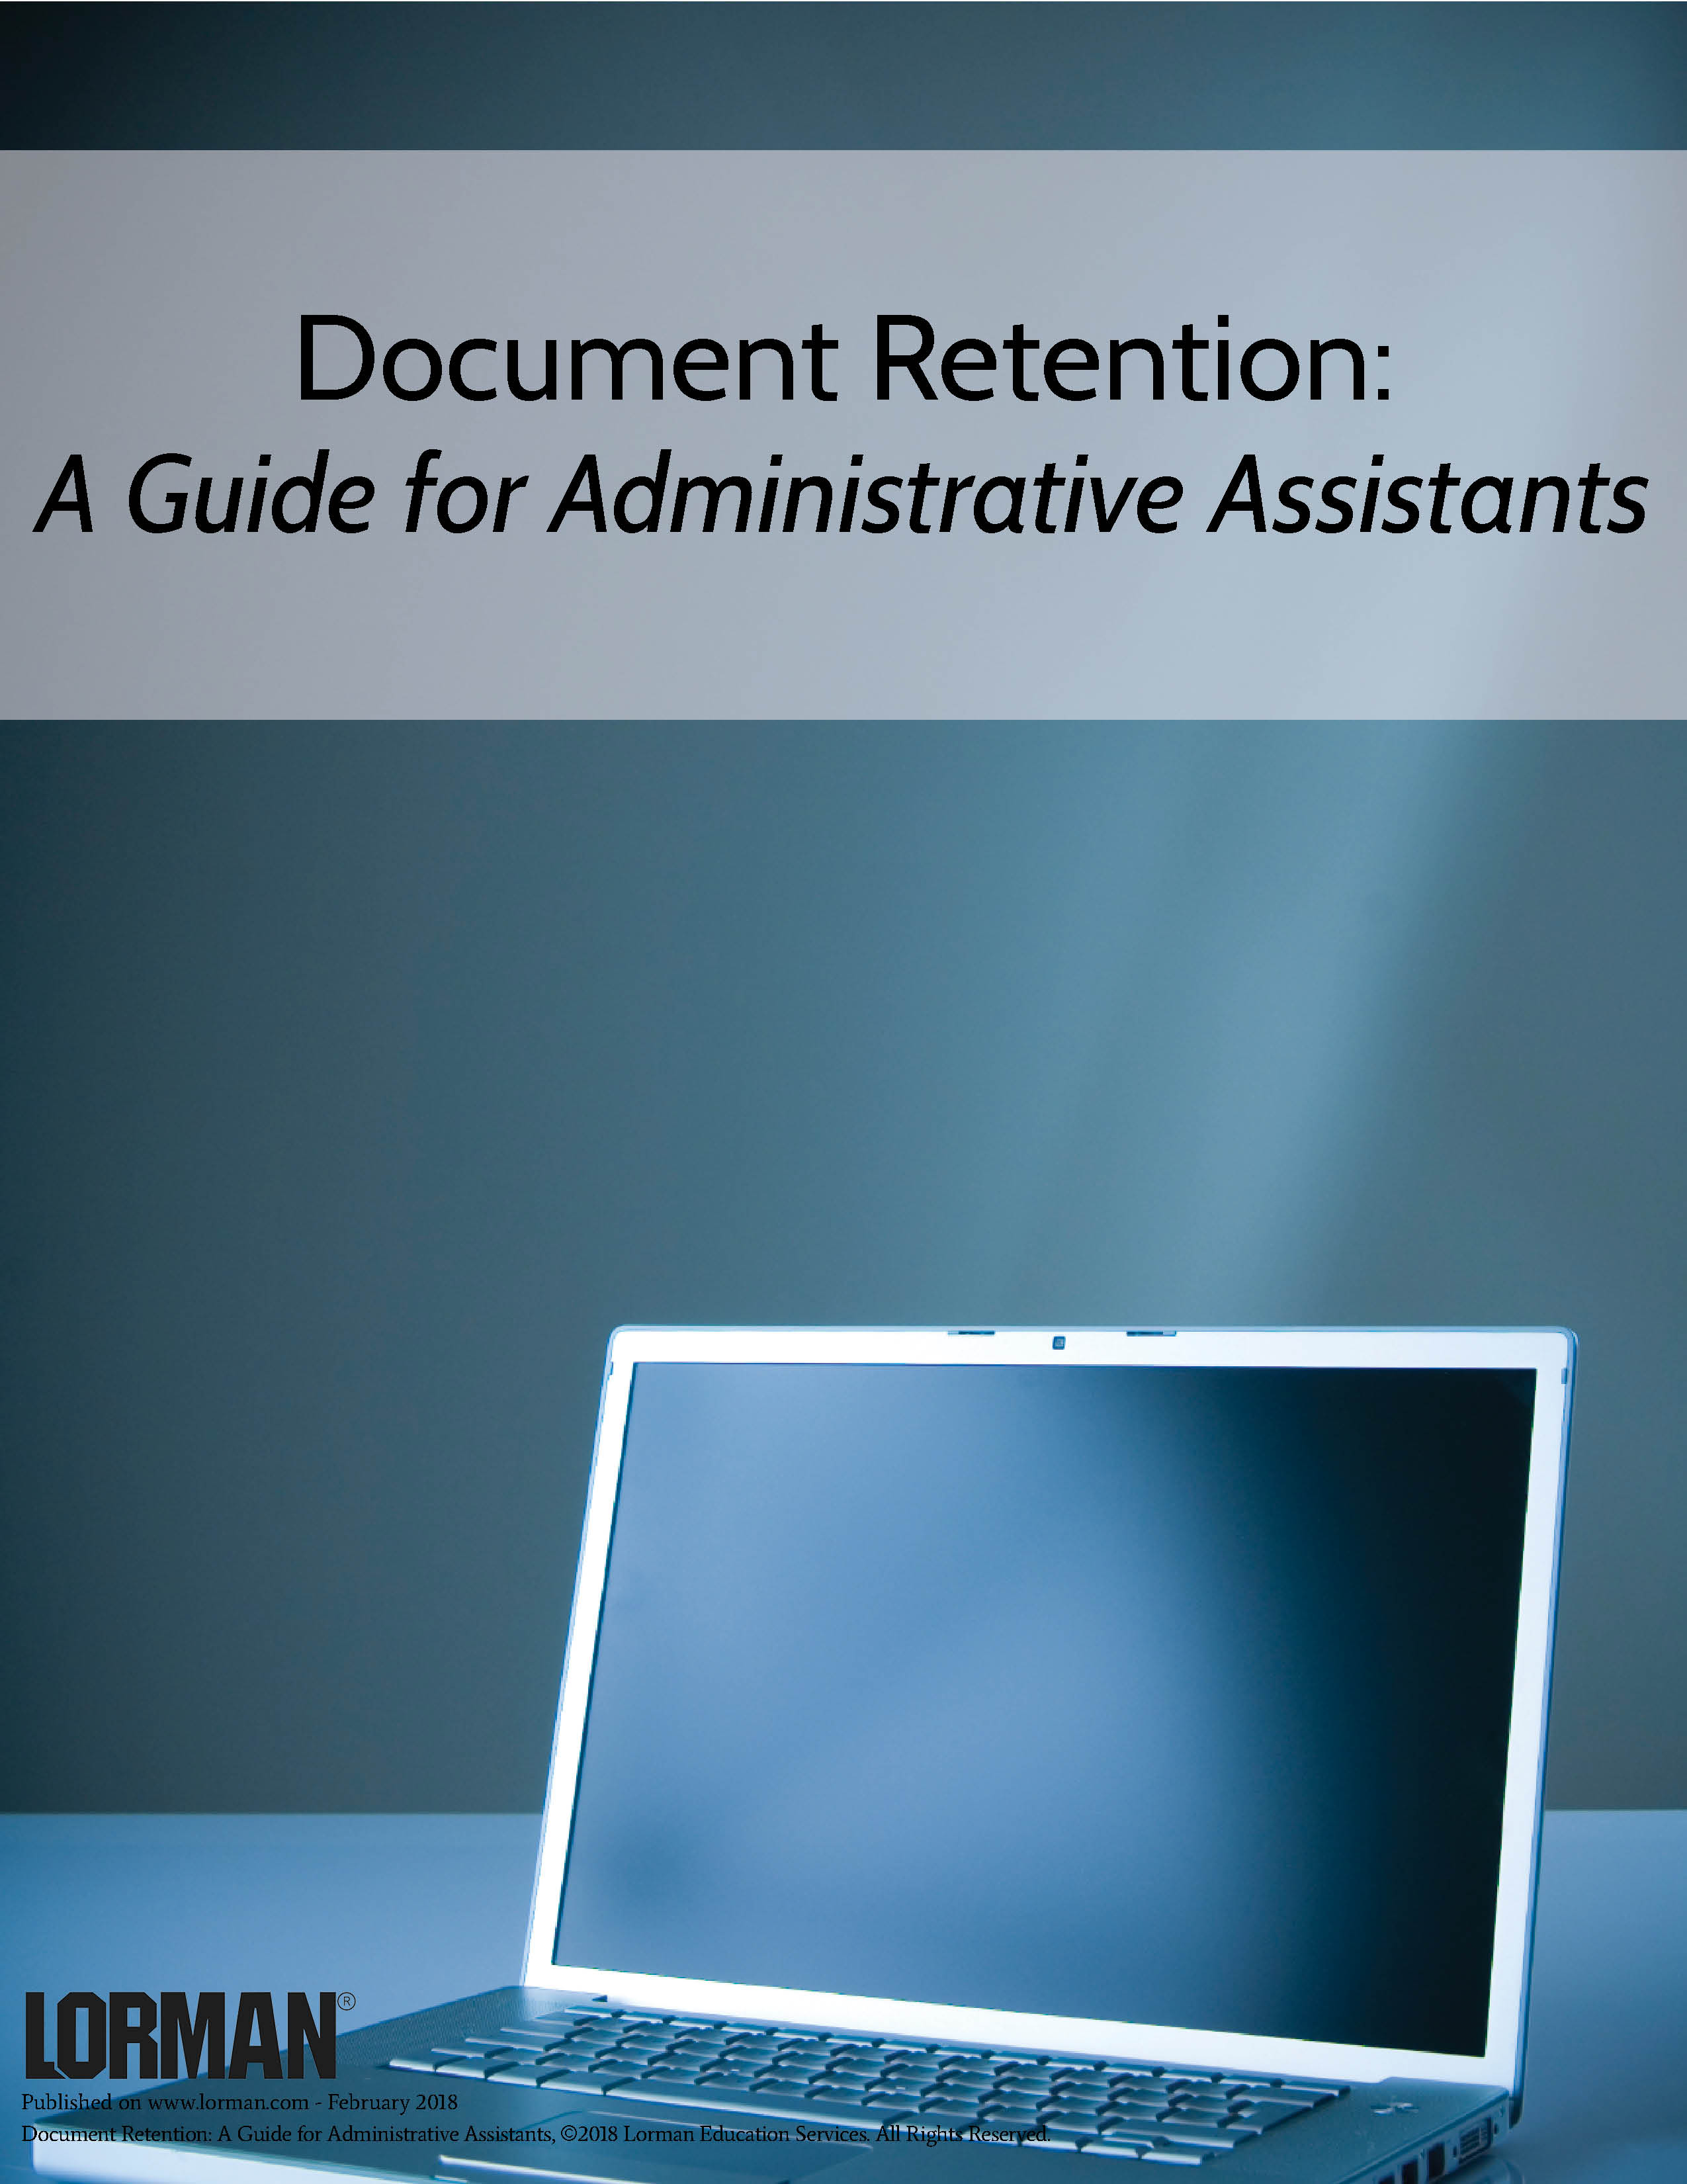 Document Retention: A Guide for Administrative Assistants